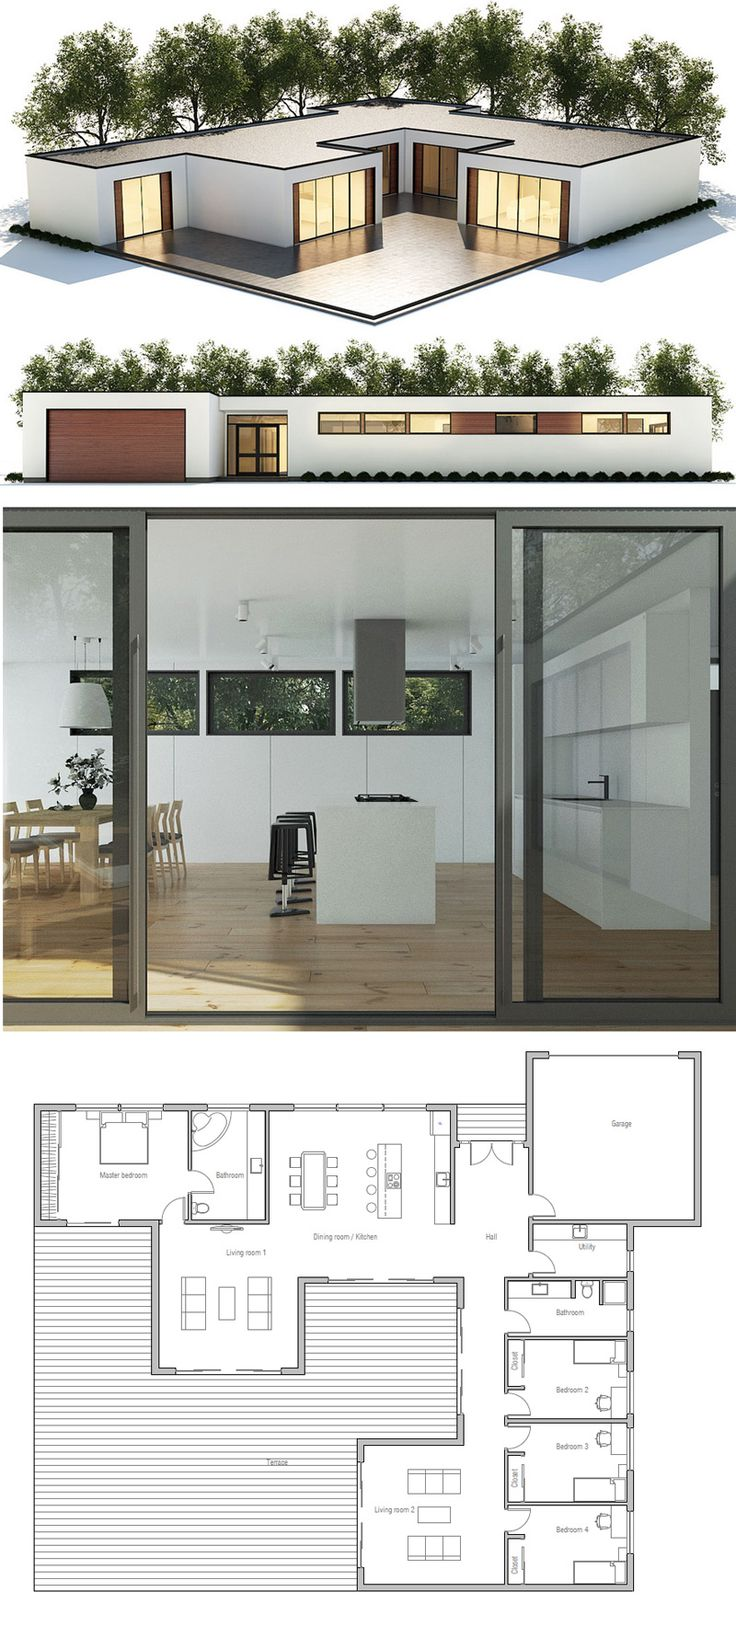 hausplan hausidee container house design floor planshouse - Home Design Plans